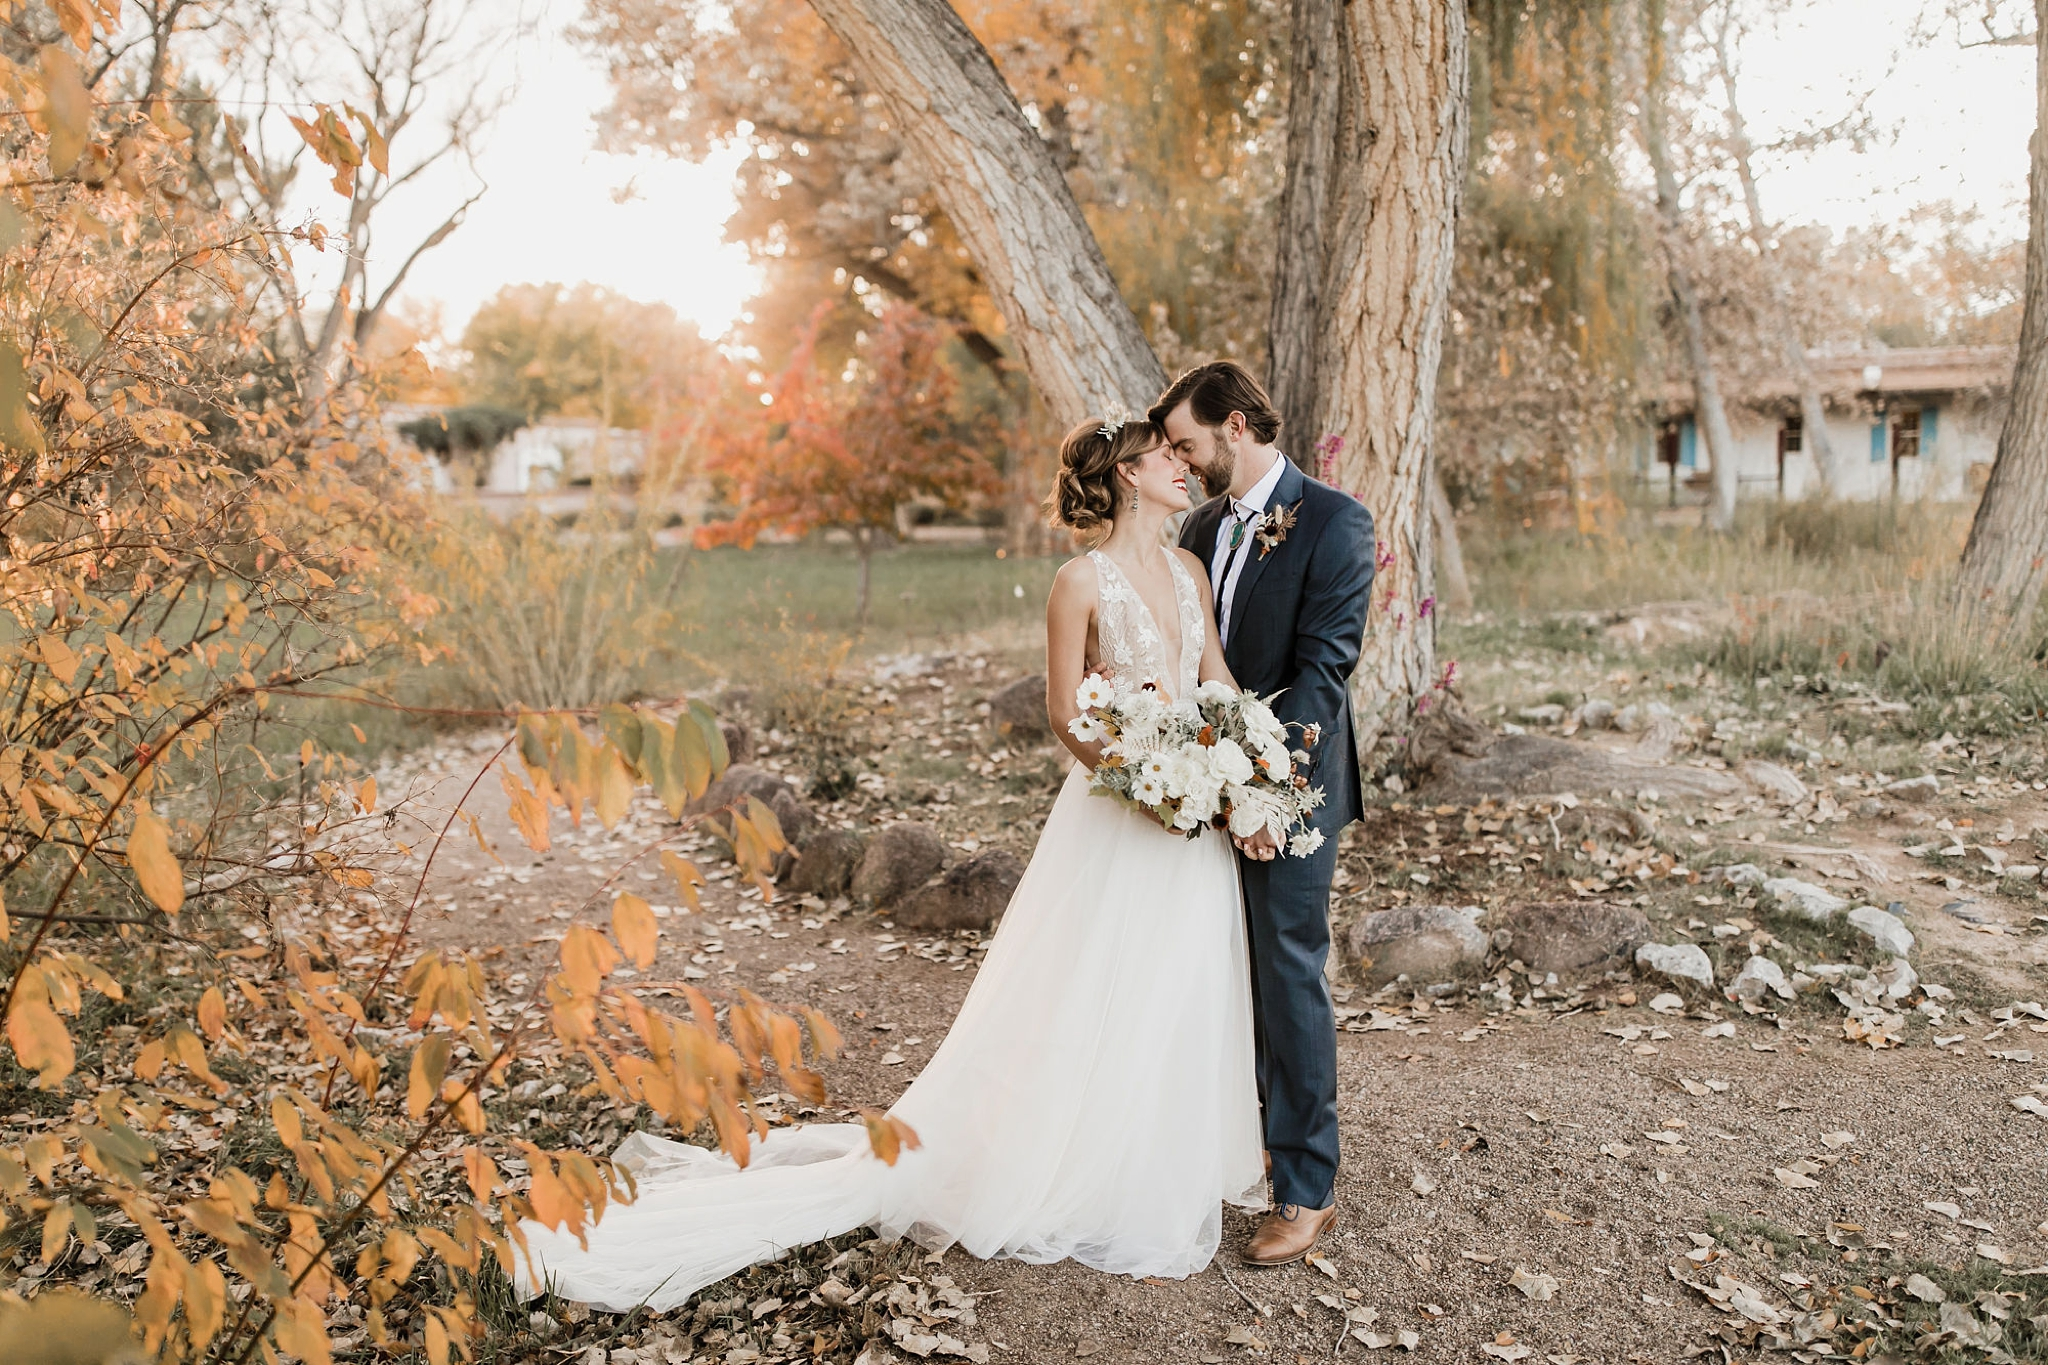 Alicia+lucia+photography+-+albuquerque+wedding+photographer+-+santa+fe+wedding+photography+-+new+mexico+wedding+photographer+-+new+mexico+wedding+-+albuquerque+wedding+-+rocky+mountain+bride+-+los+poblanos+wedding_0090.jpg